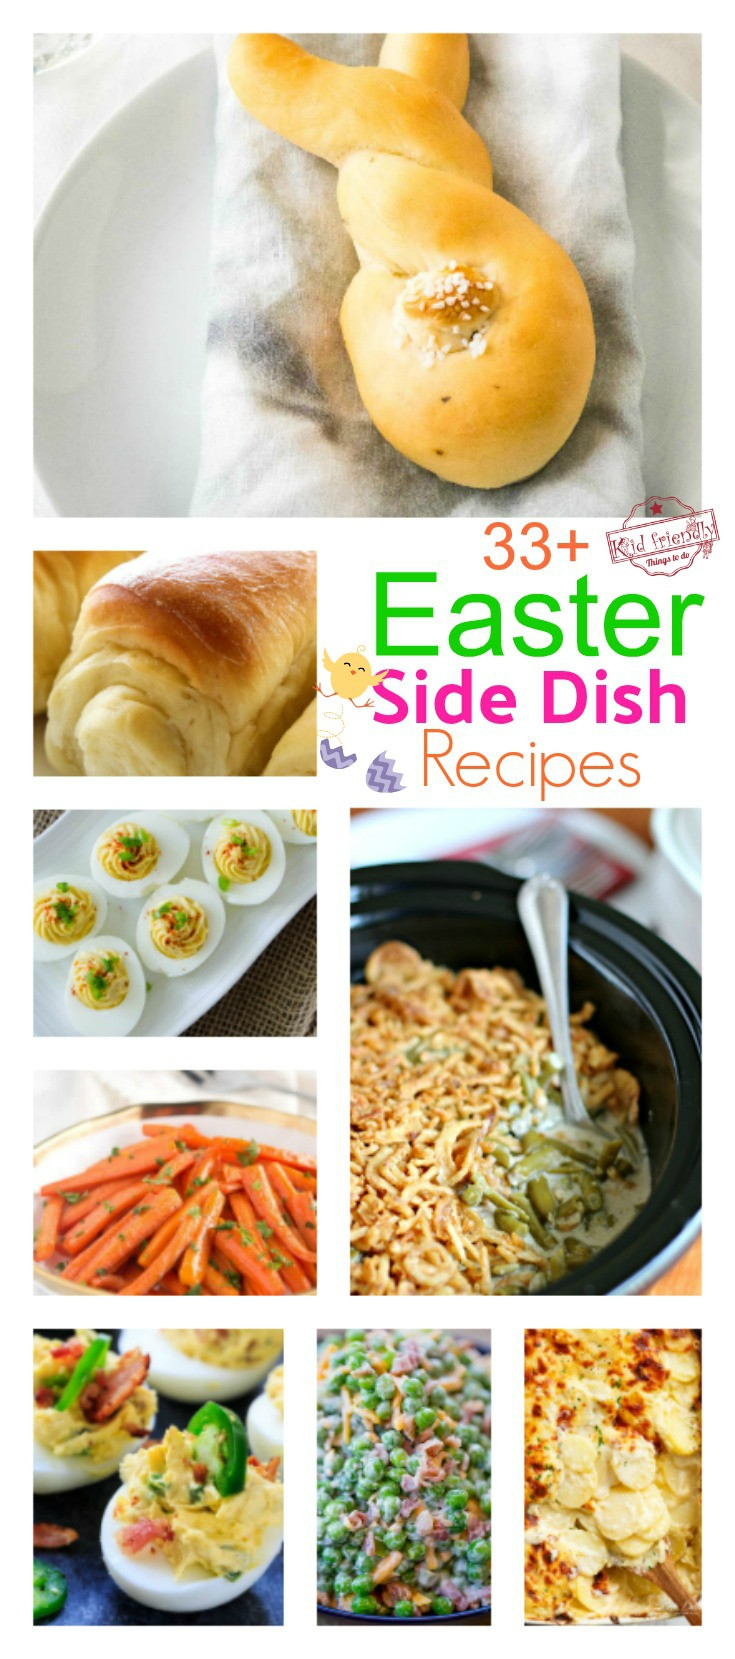 Side Dishes For Easter  Over 33 Easter Side Dish Recipes for Your Celebration Dinner